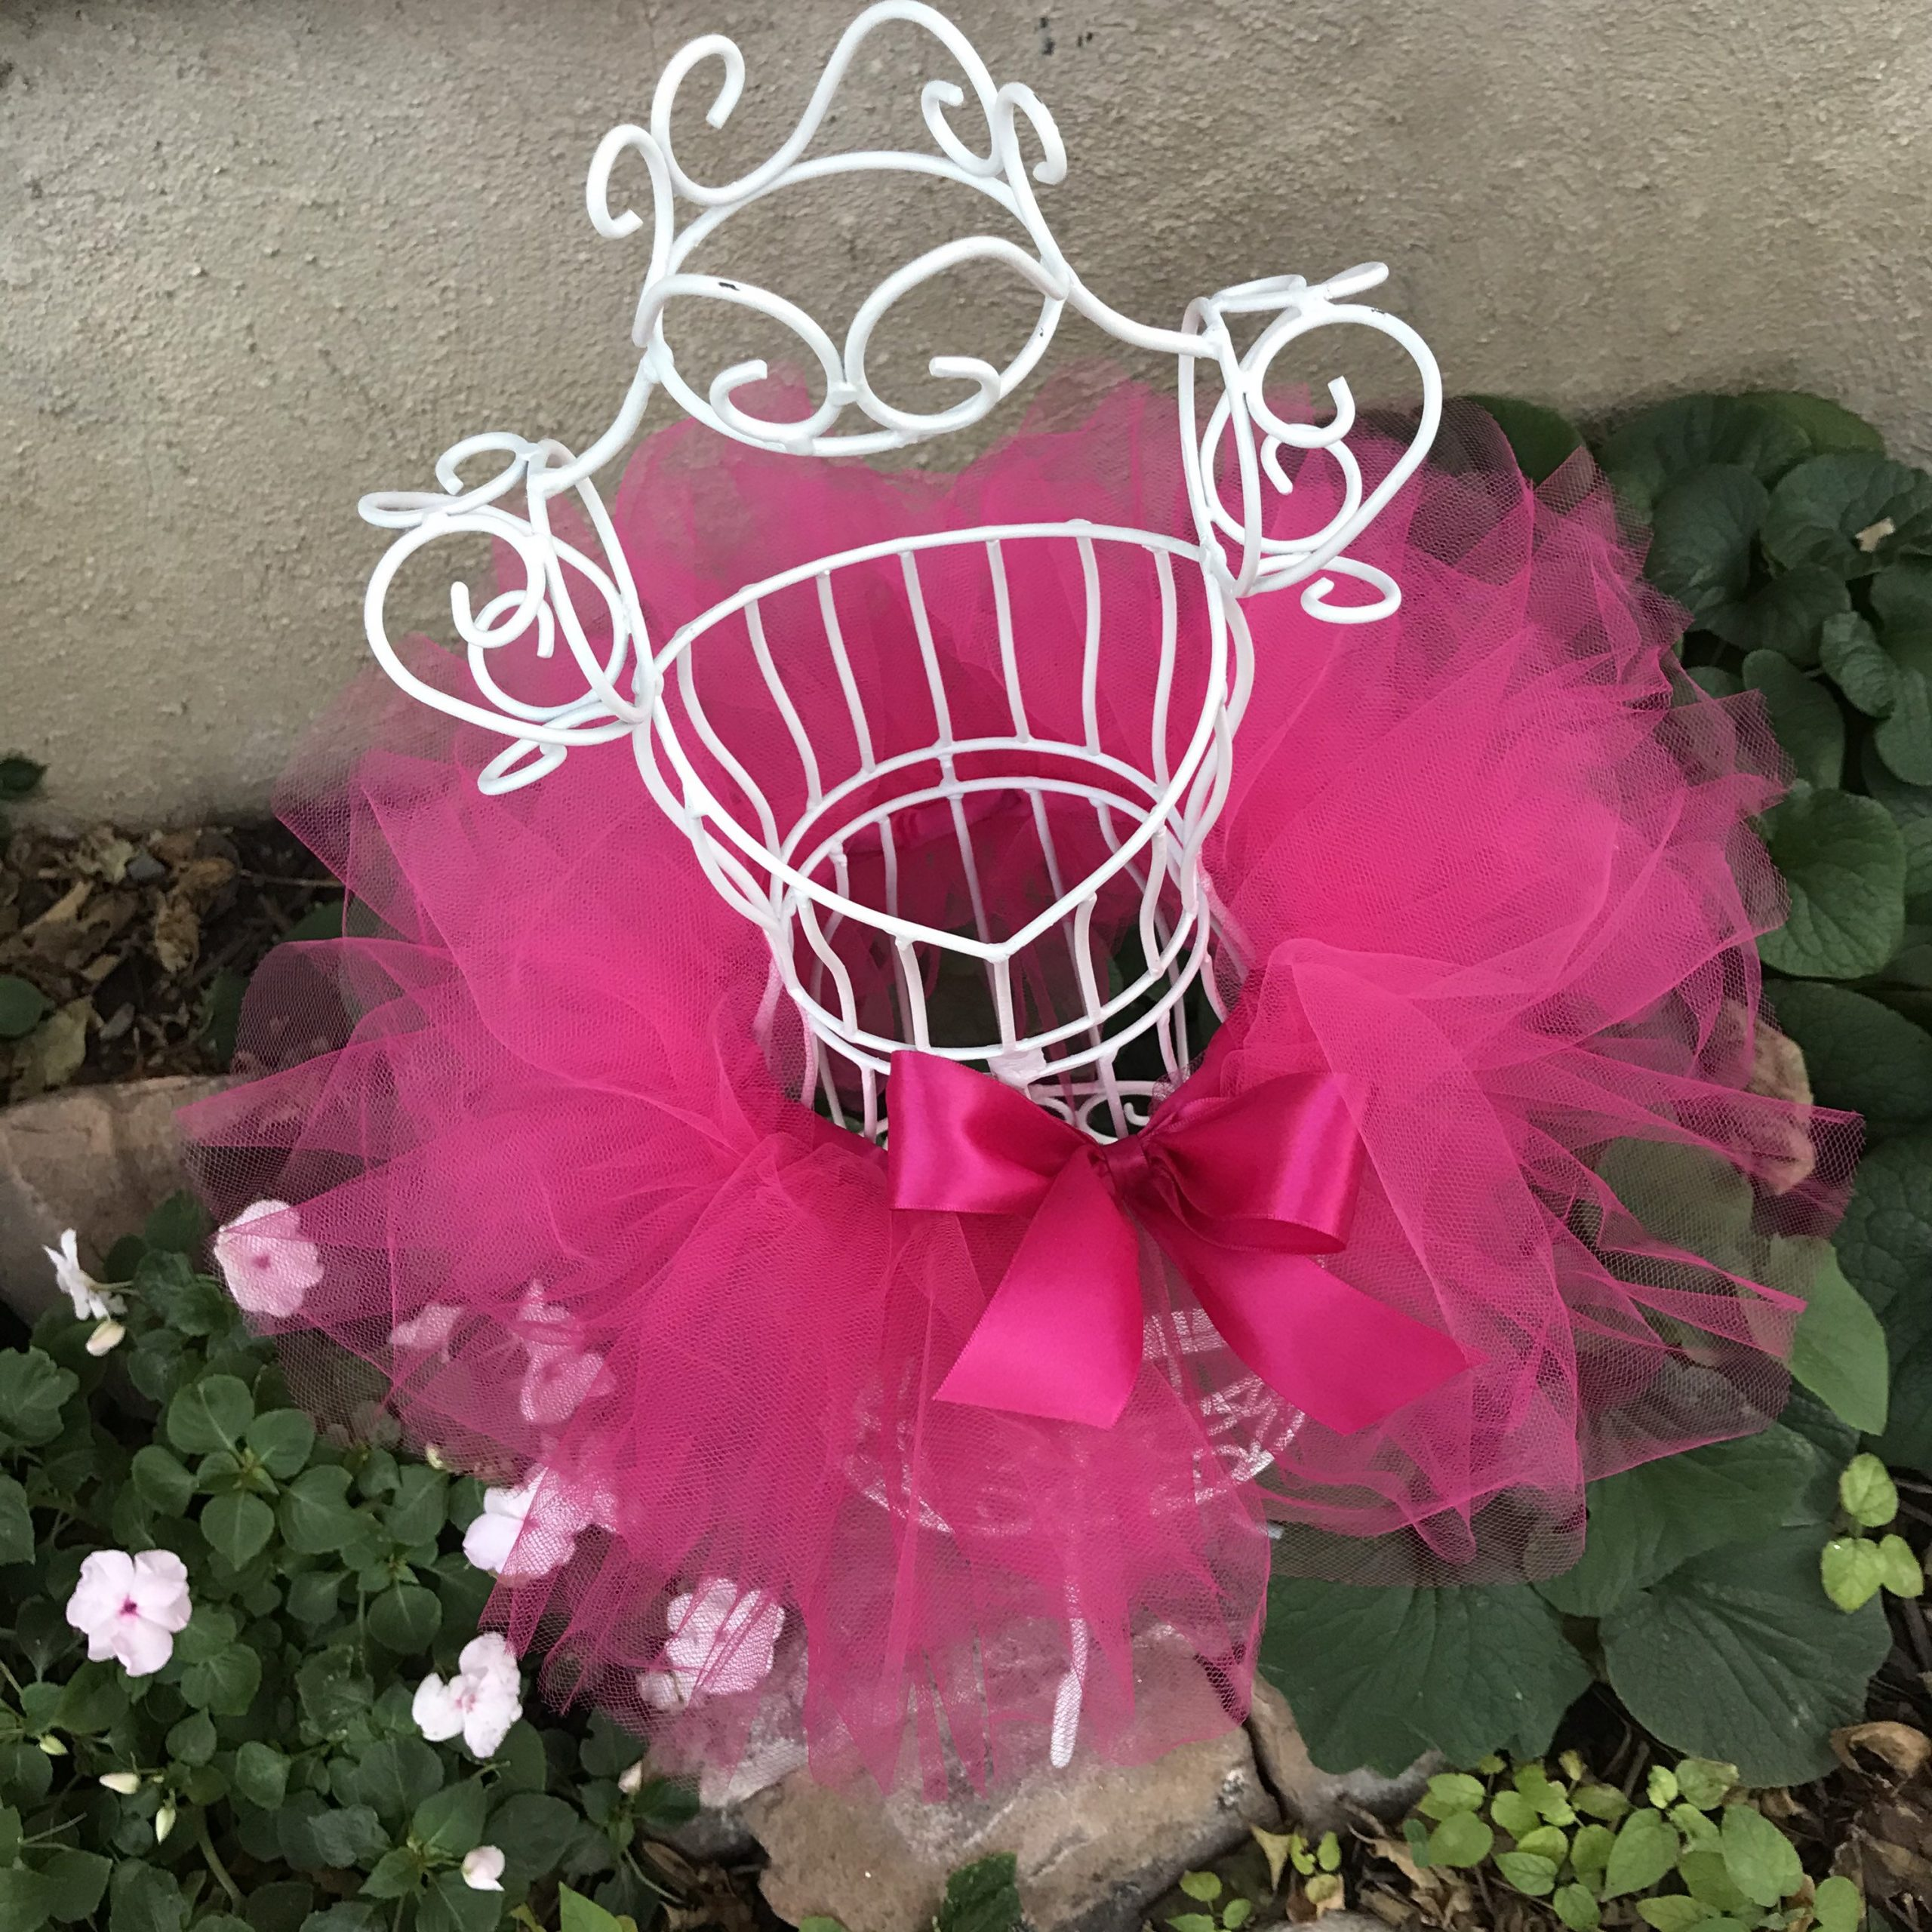 Hot Pink Tutu Baby Toddler Ballerina Outfit Child Girls Halloween Costume Dress Up First Birthday Party Cake Smash Photo Shoot Prop Gift Set